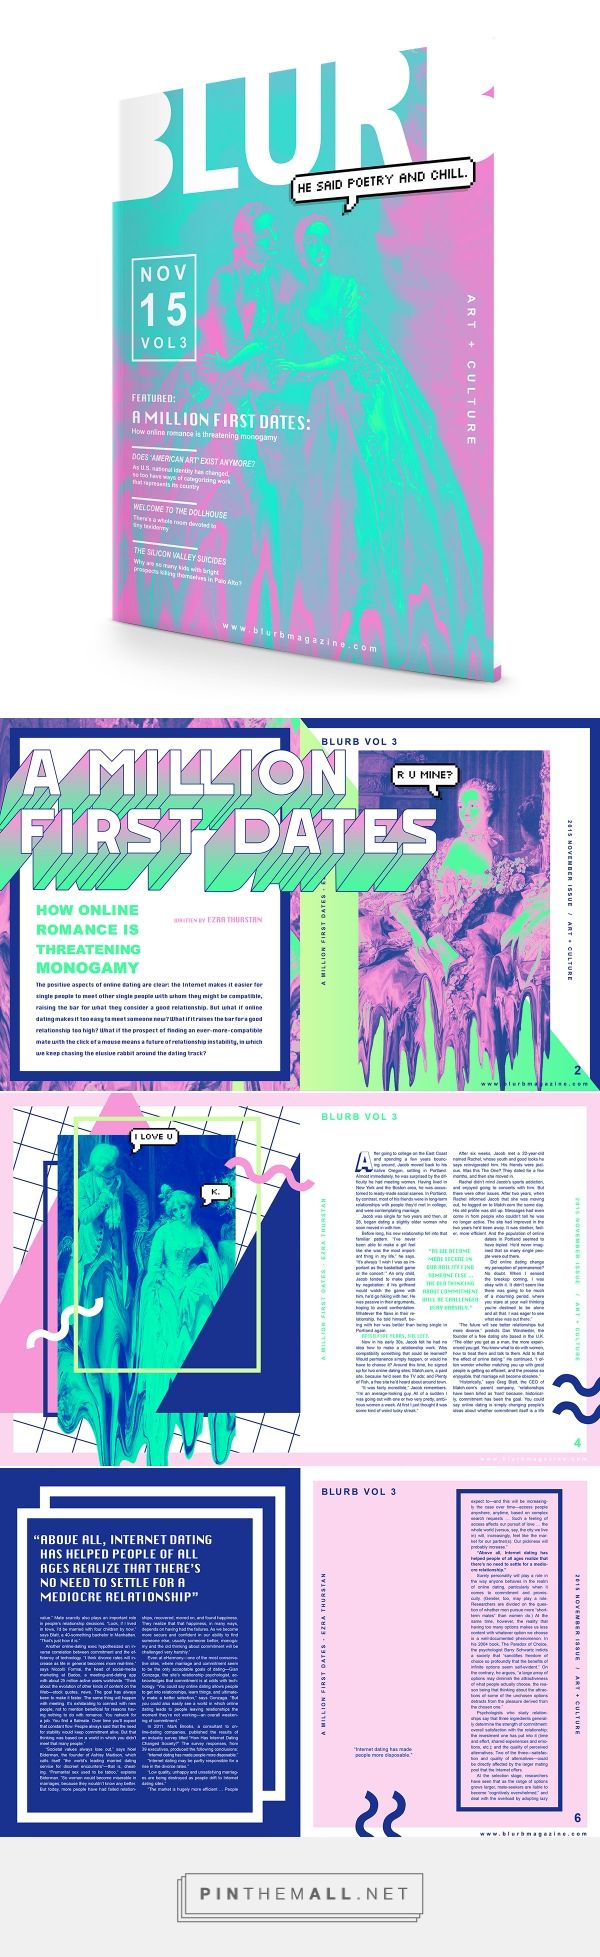 a million first dates editorial spread on behance a grouped images picture pin them allmix feelings love